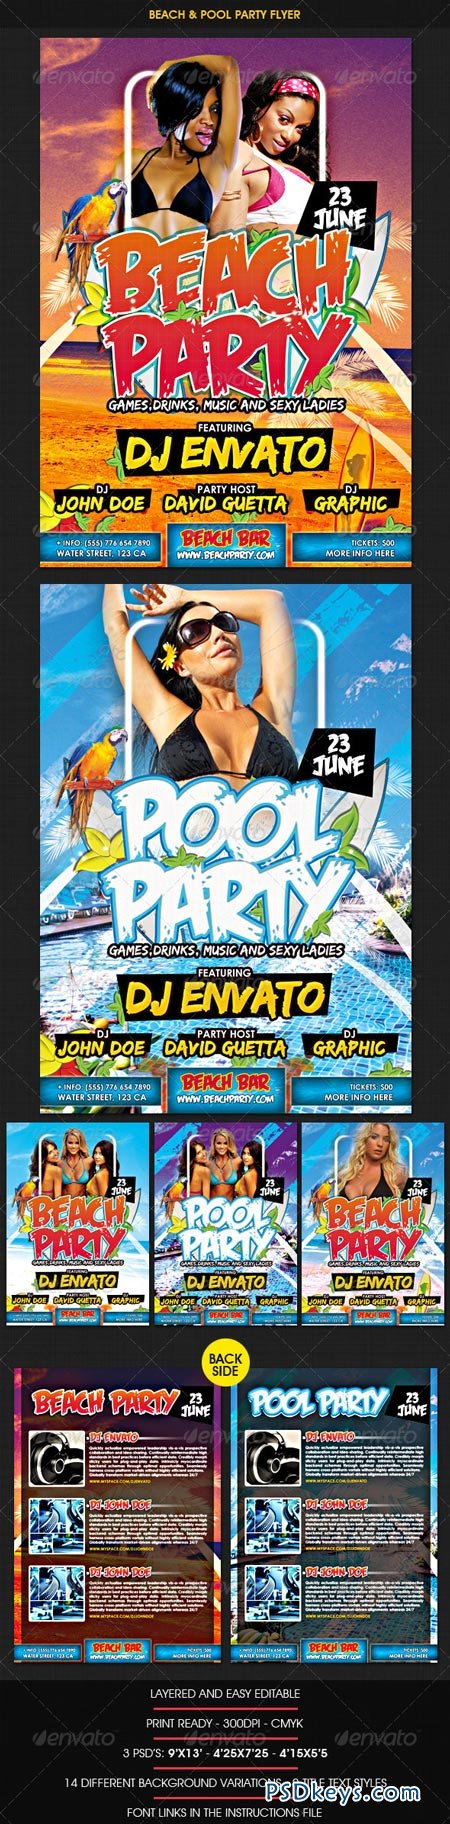 Beach & Pool Party Flyer 1929678